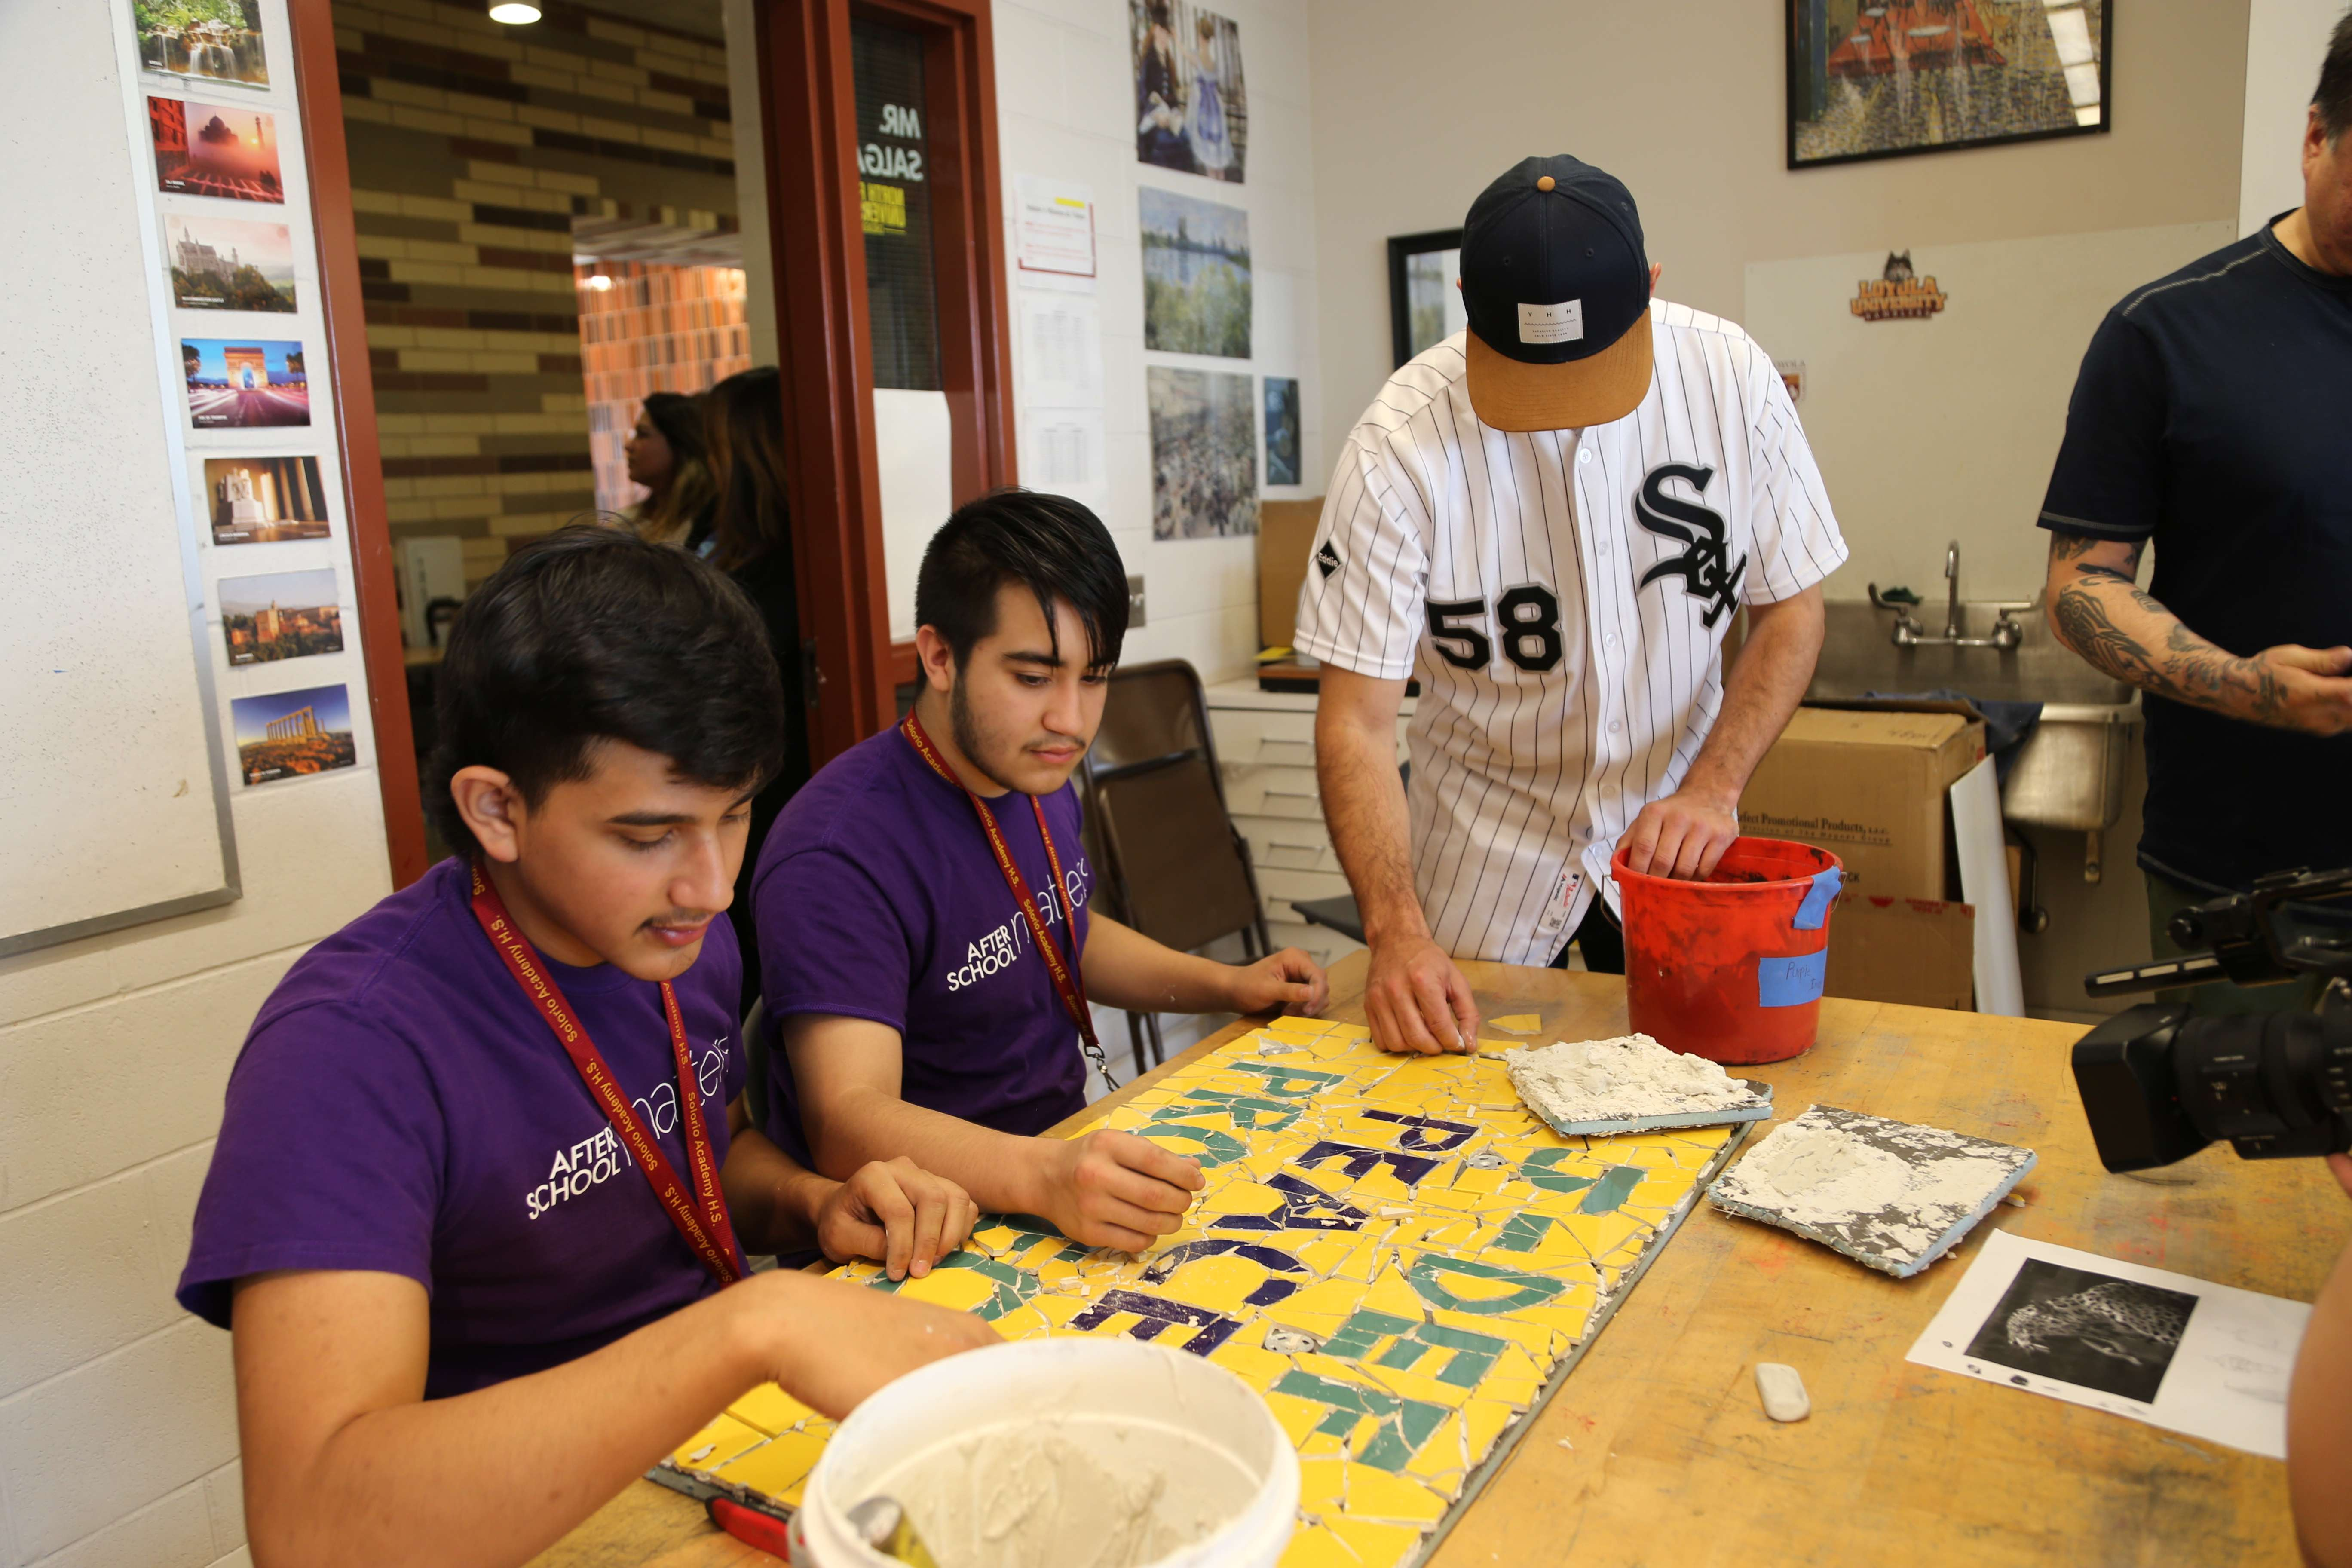 Gonzalez helps piece together a mosaic with the name of the program.